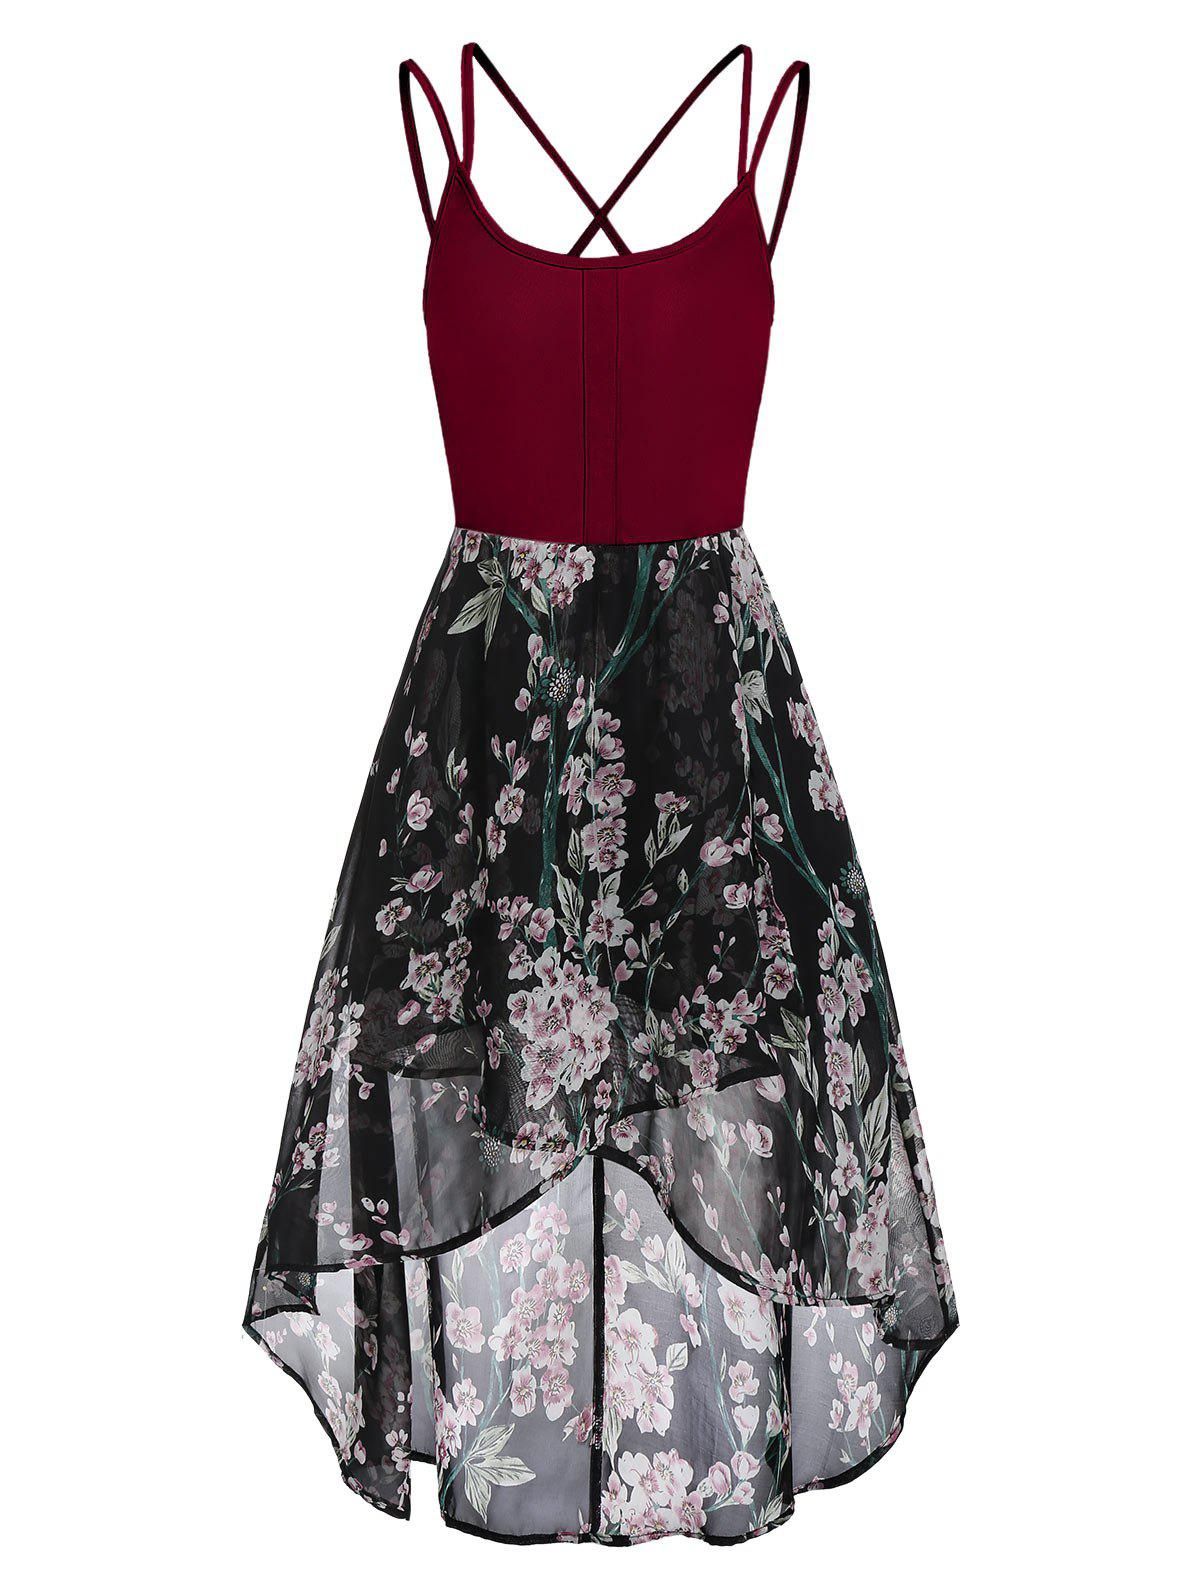 High Low Floral Cross Back Cami Dress - RED WINE 3XL